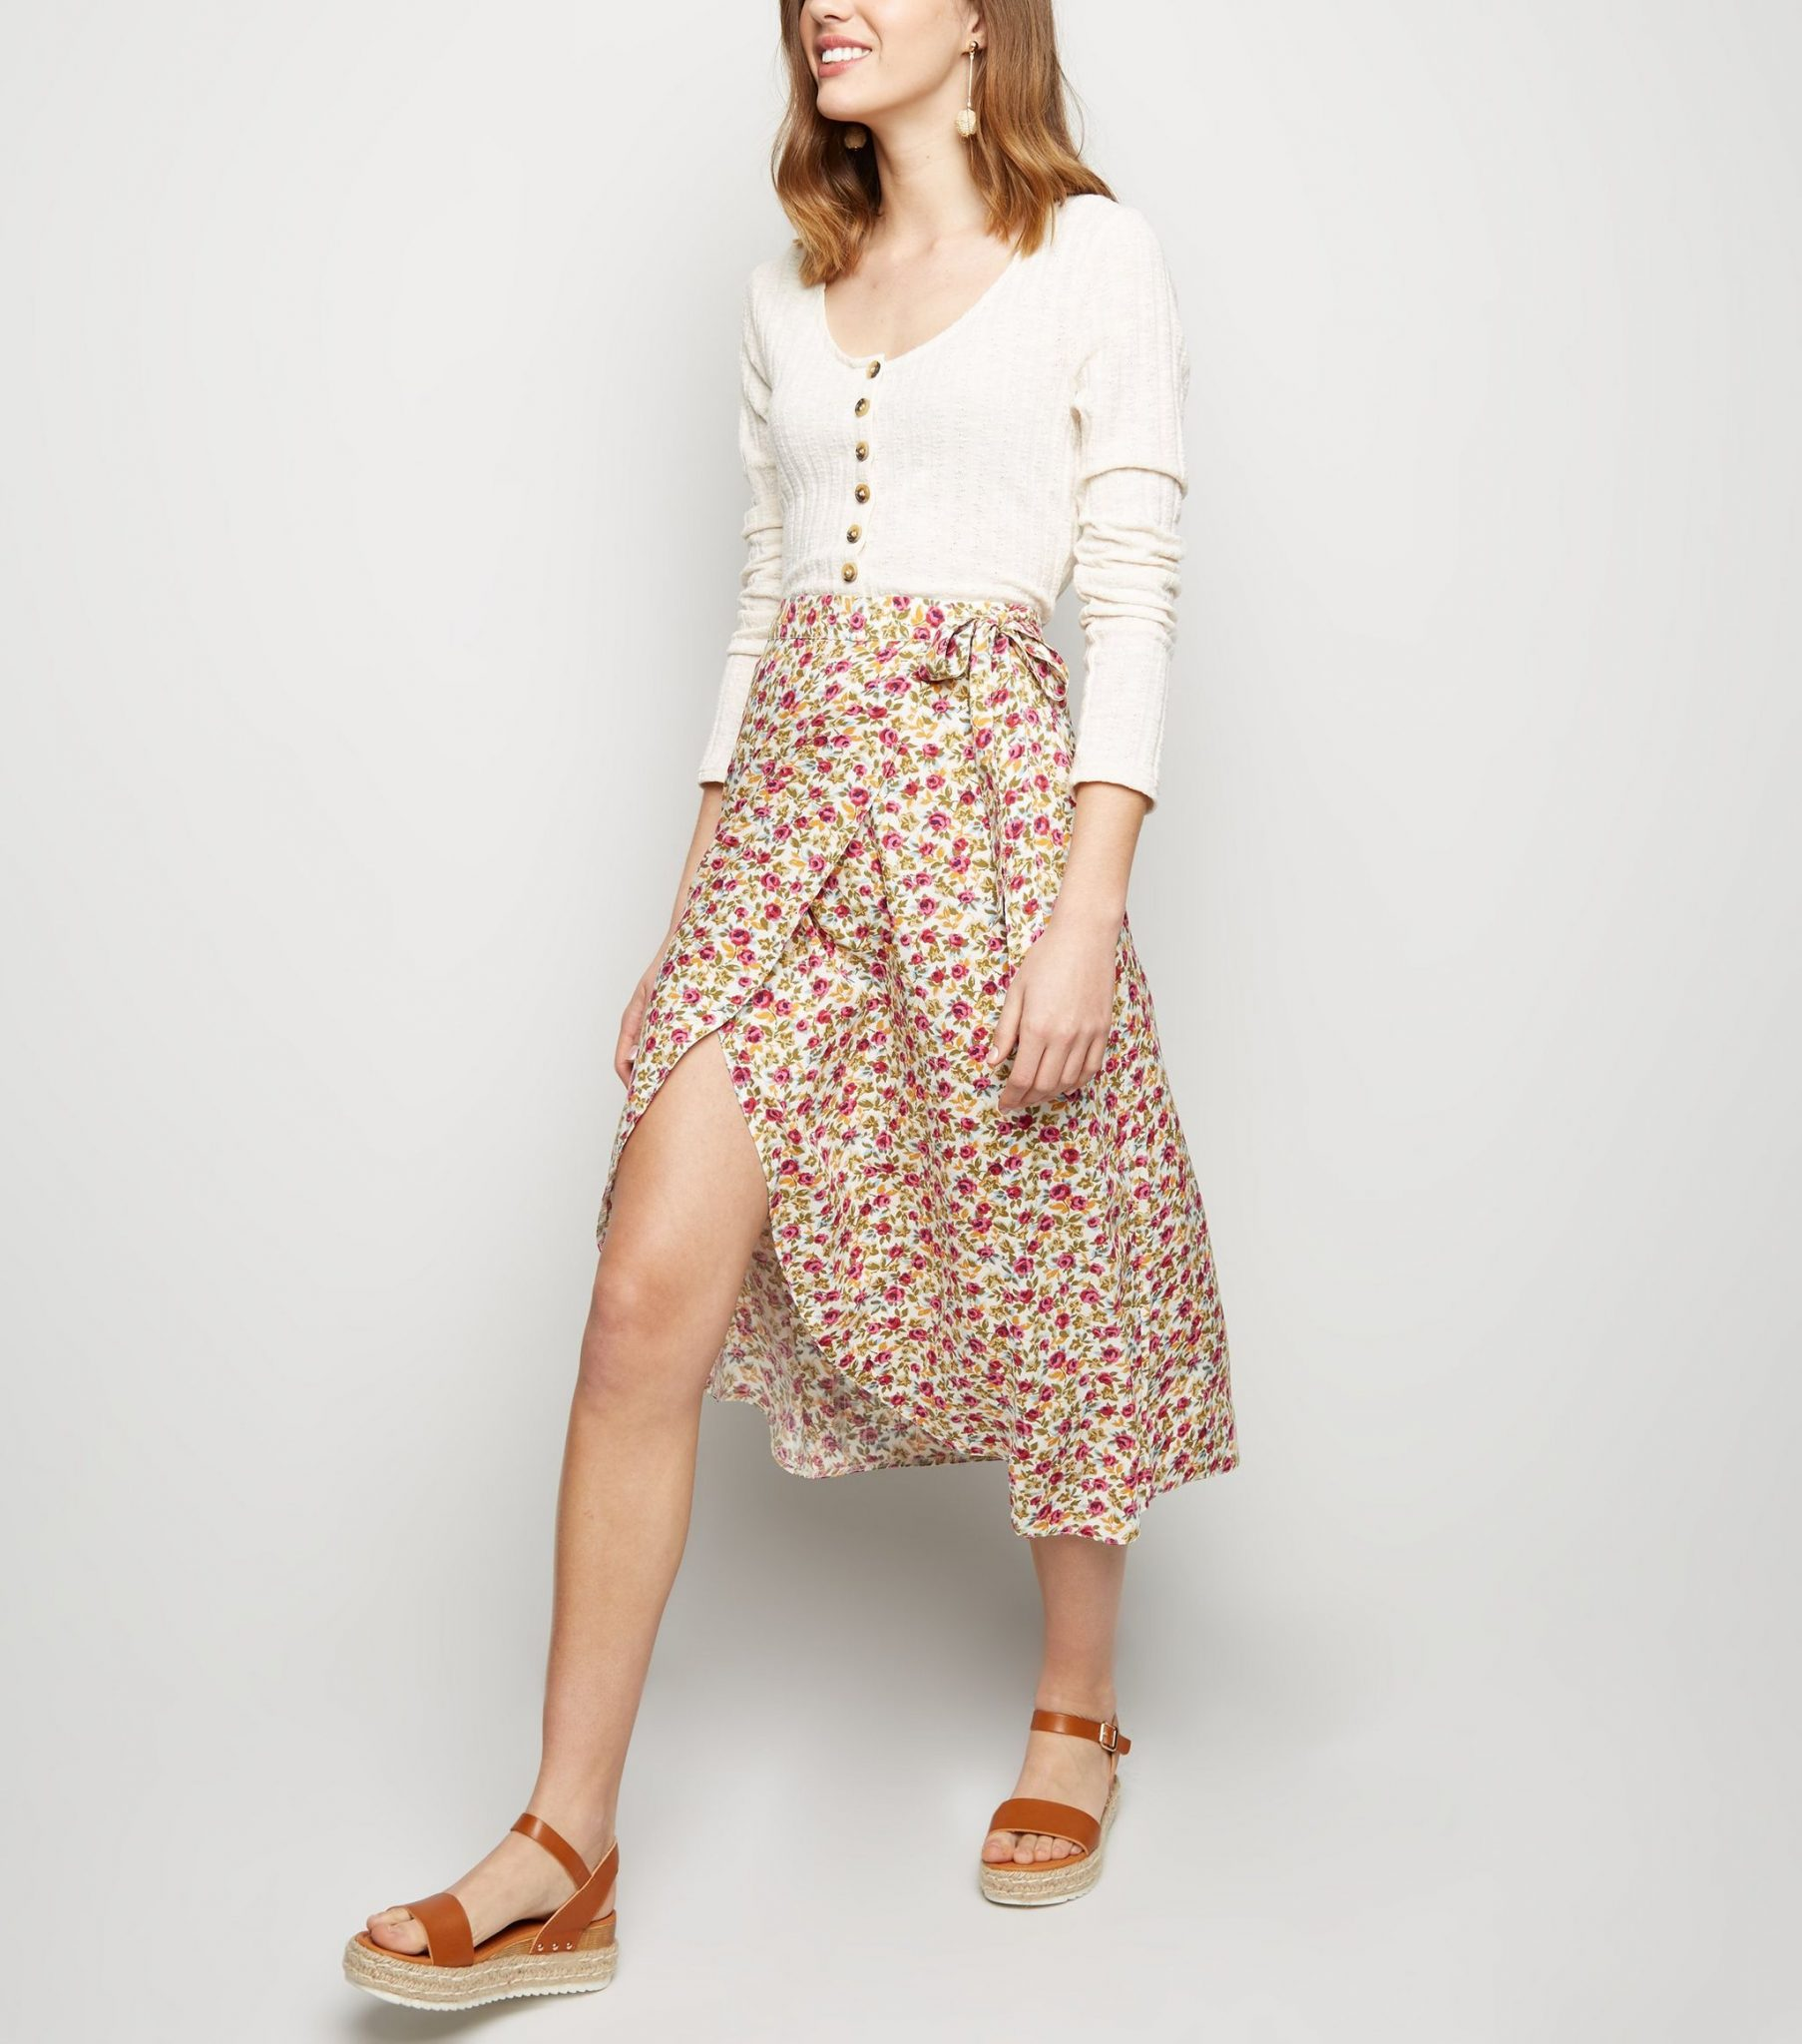 a47ca17e5505 The latest one to catch our eye is this floral-print wrap skirt from New  Look.